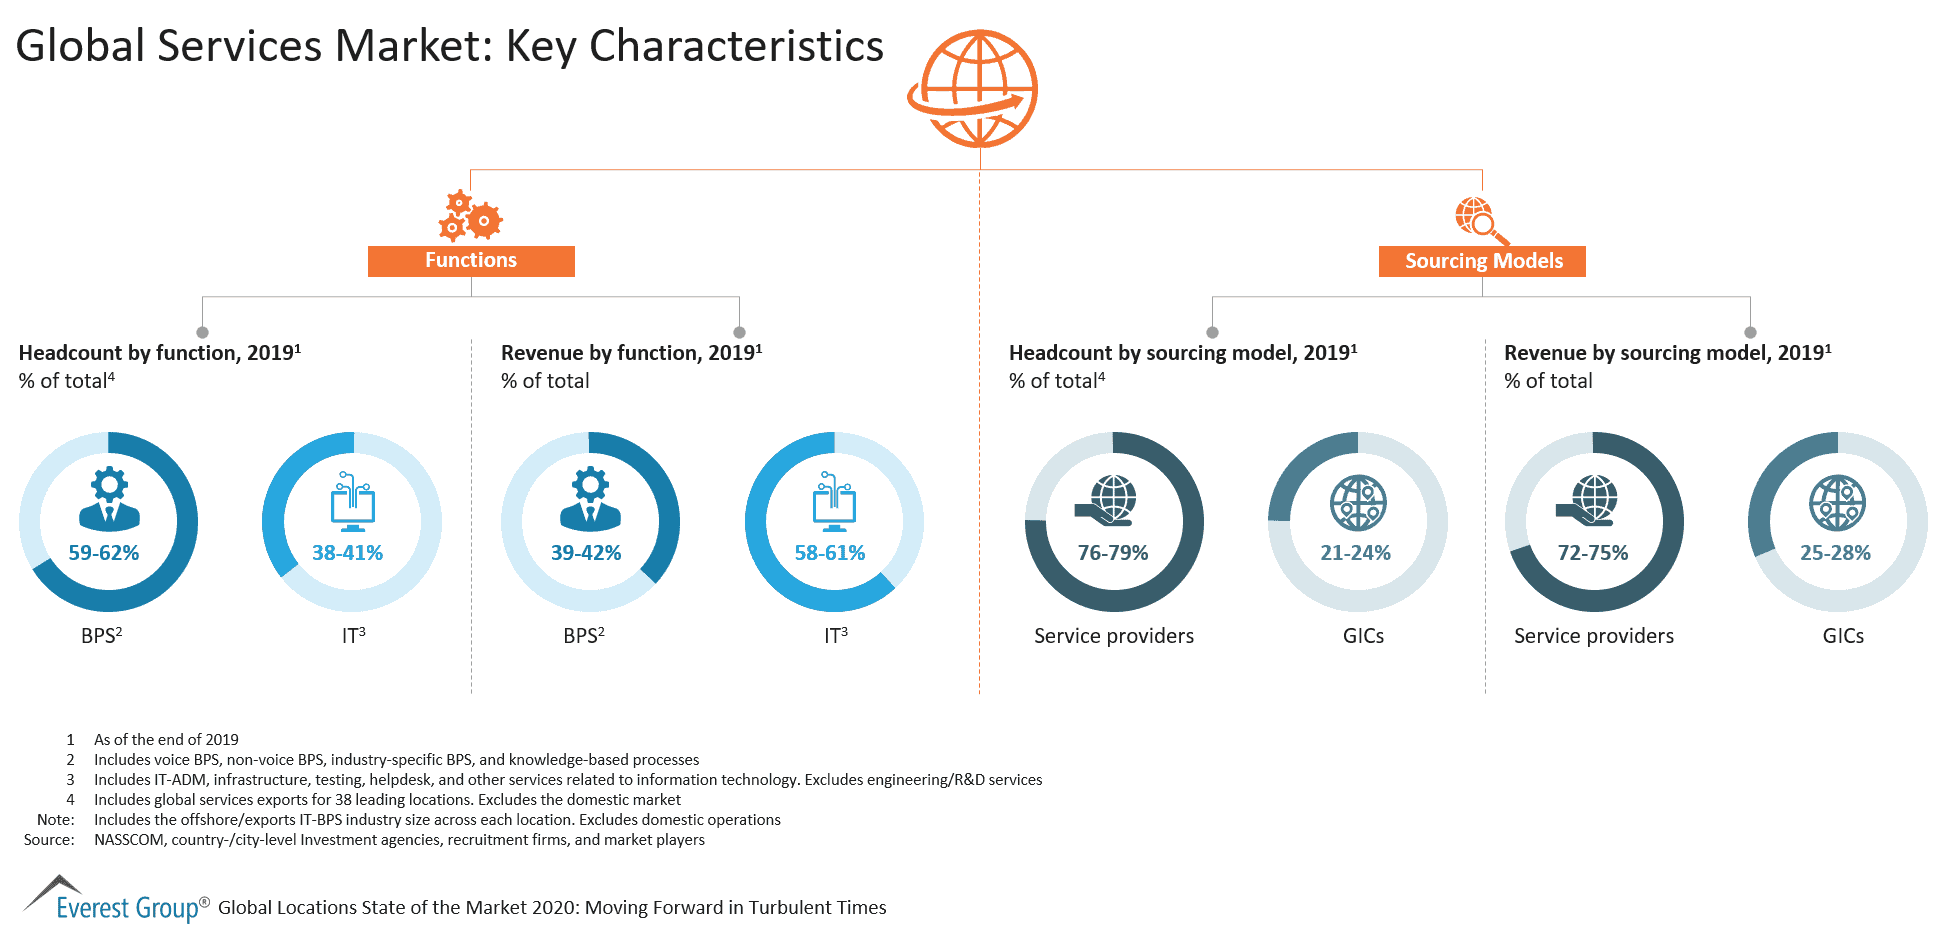 Global Services Market - Key Characteristics